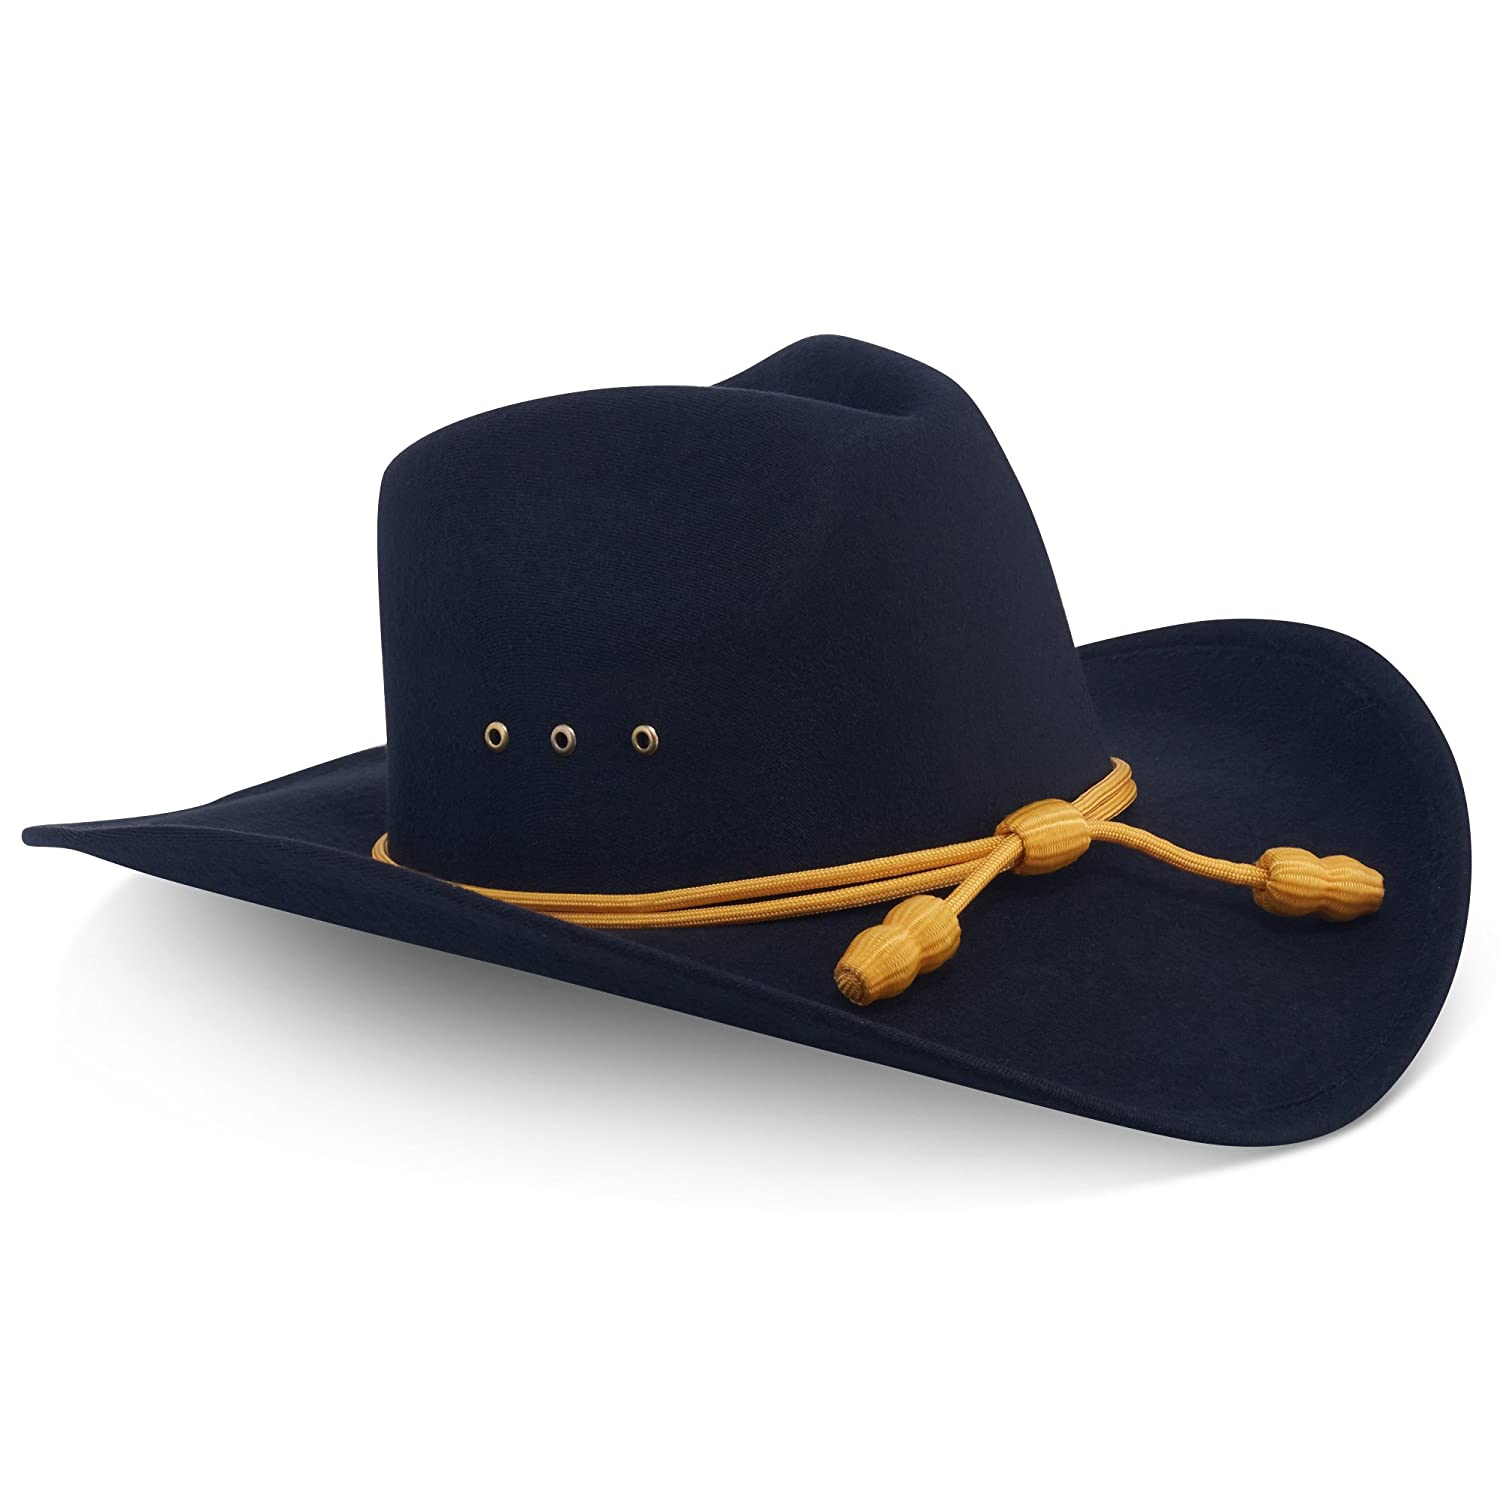 Western Cowboy Hat - Cattleman s with Cavalry Band - Black  8334a6121b94